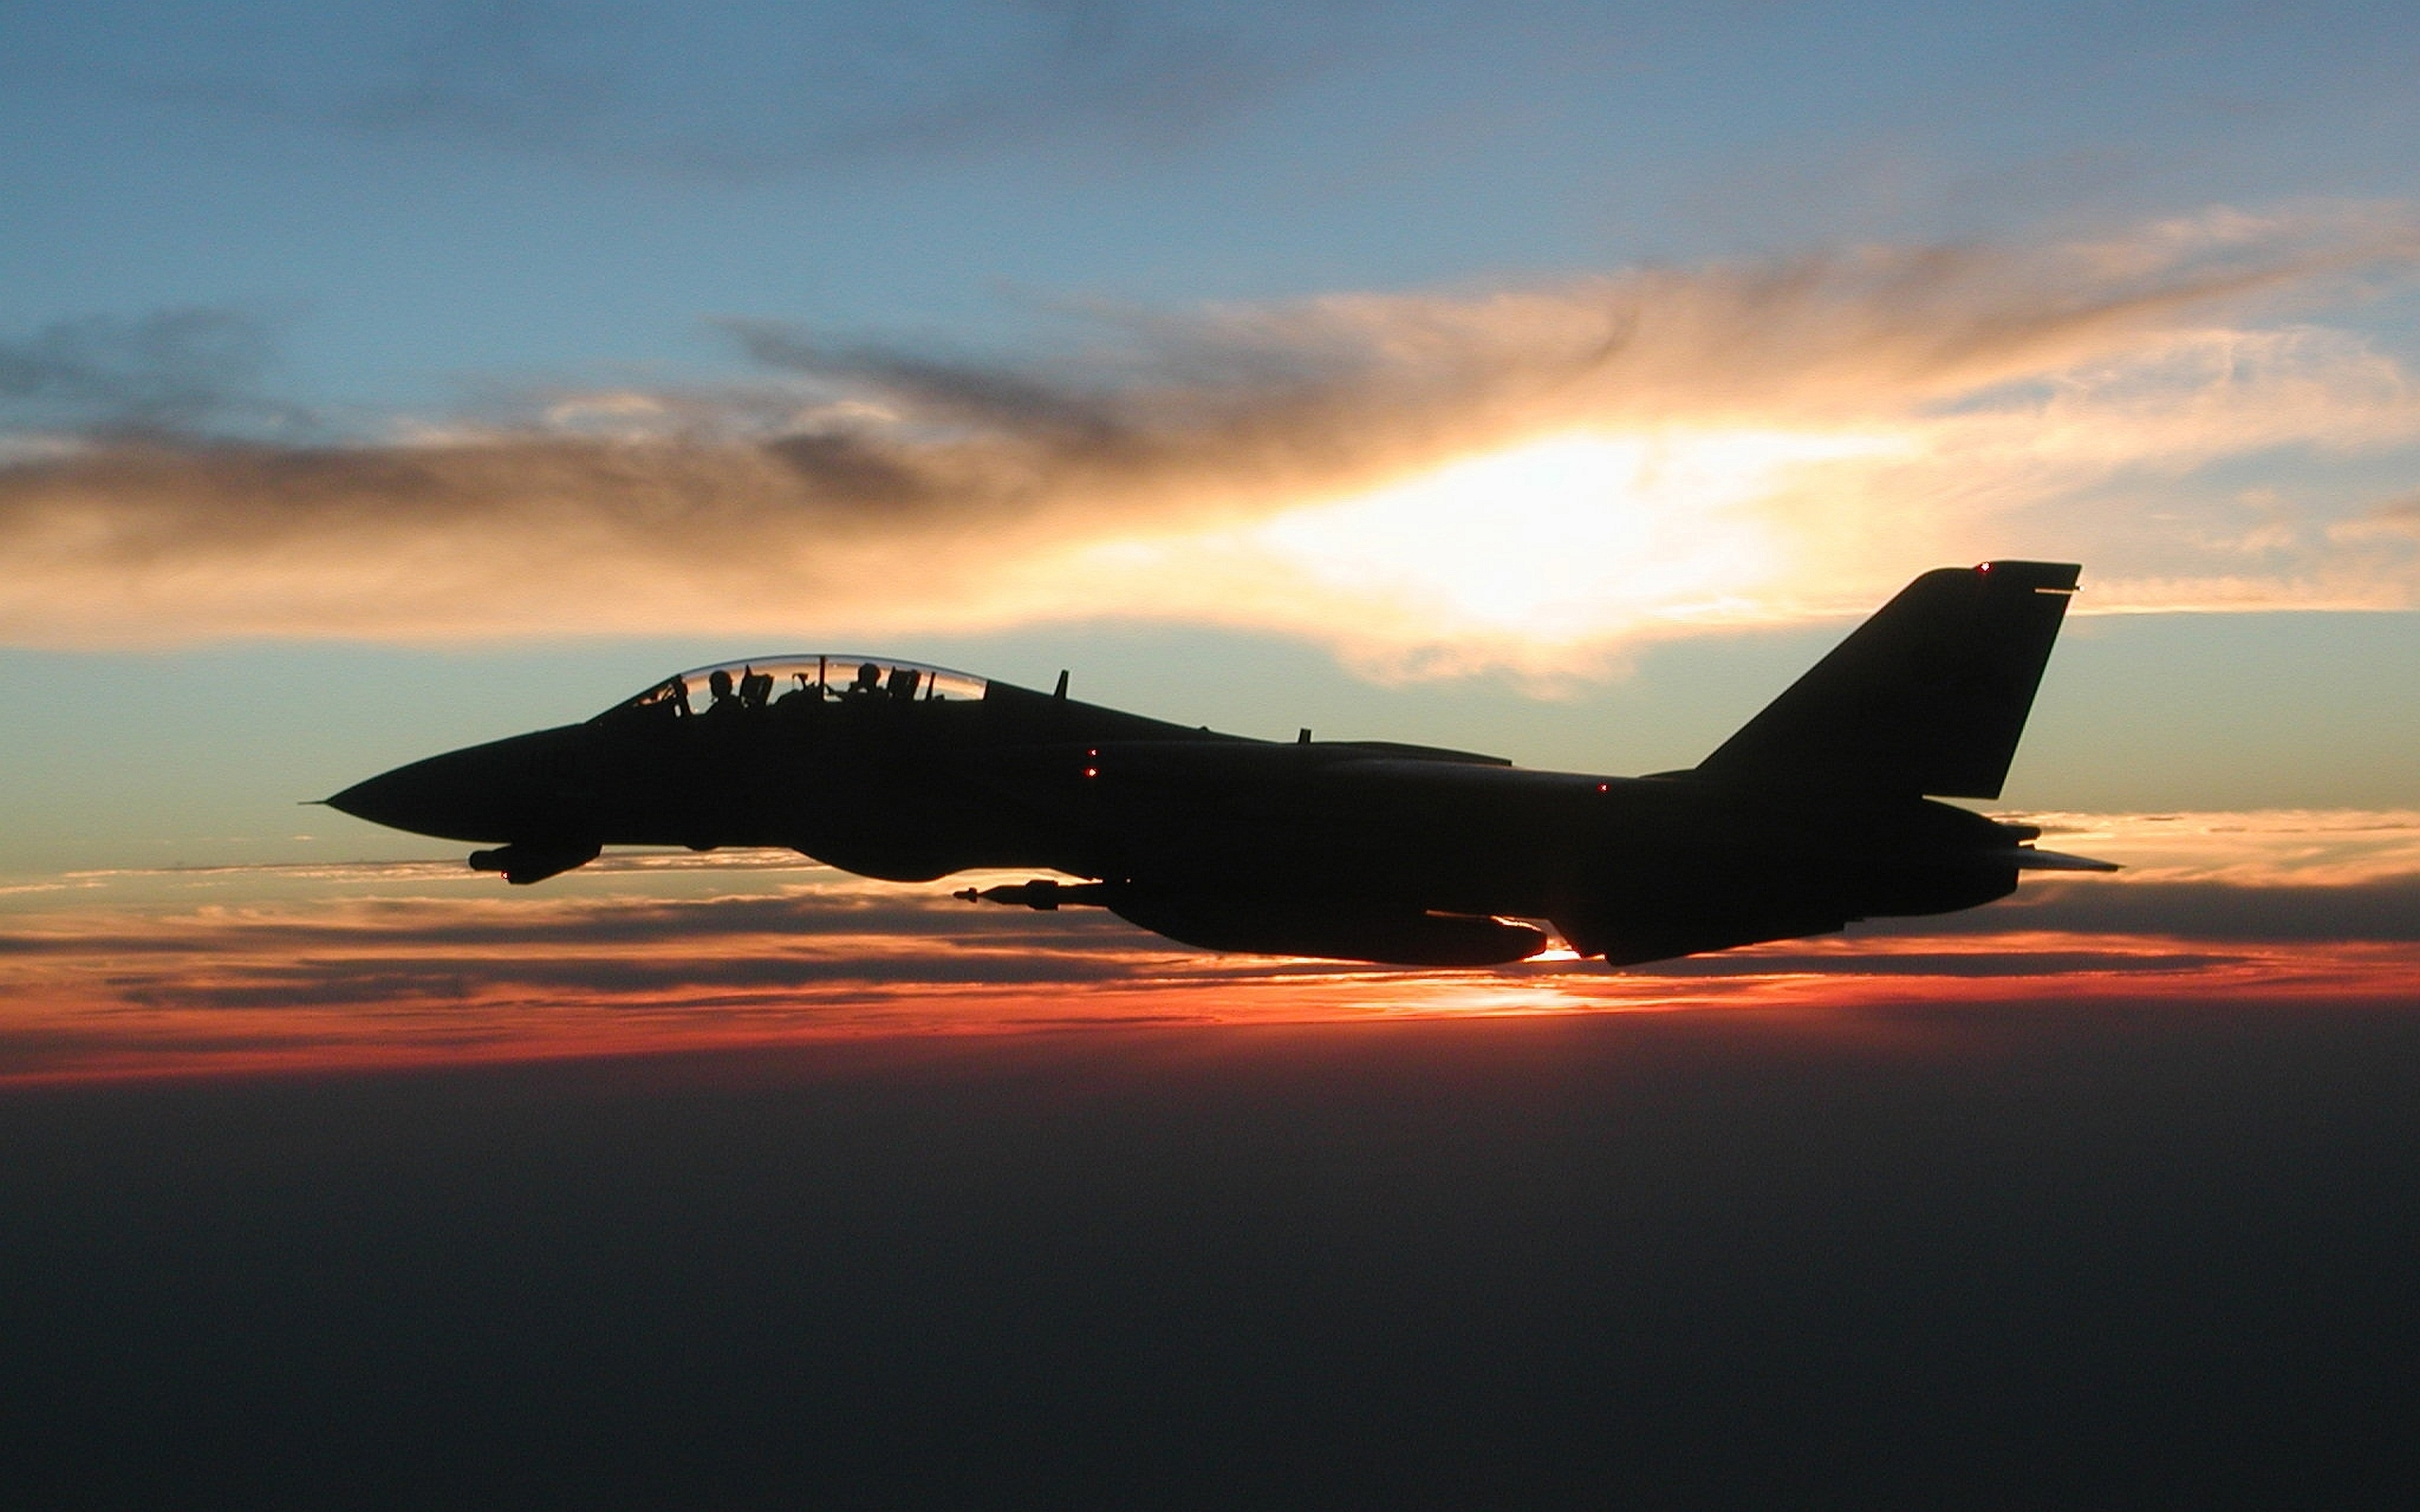 49 grumman f-14 tomcat hd wallpapers | background images - wallpaper